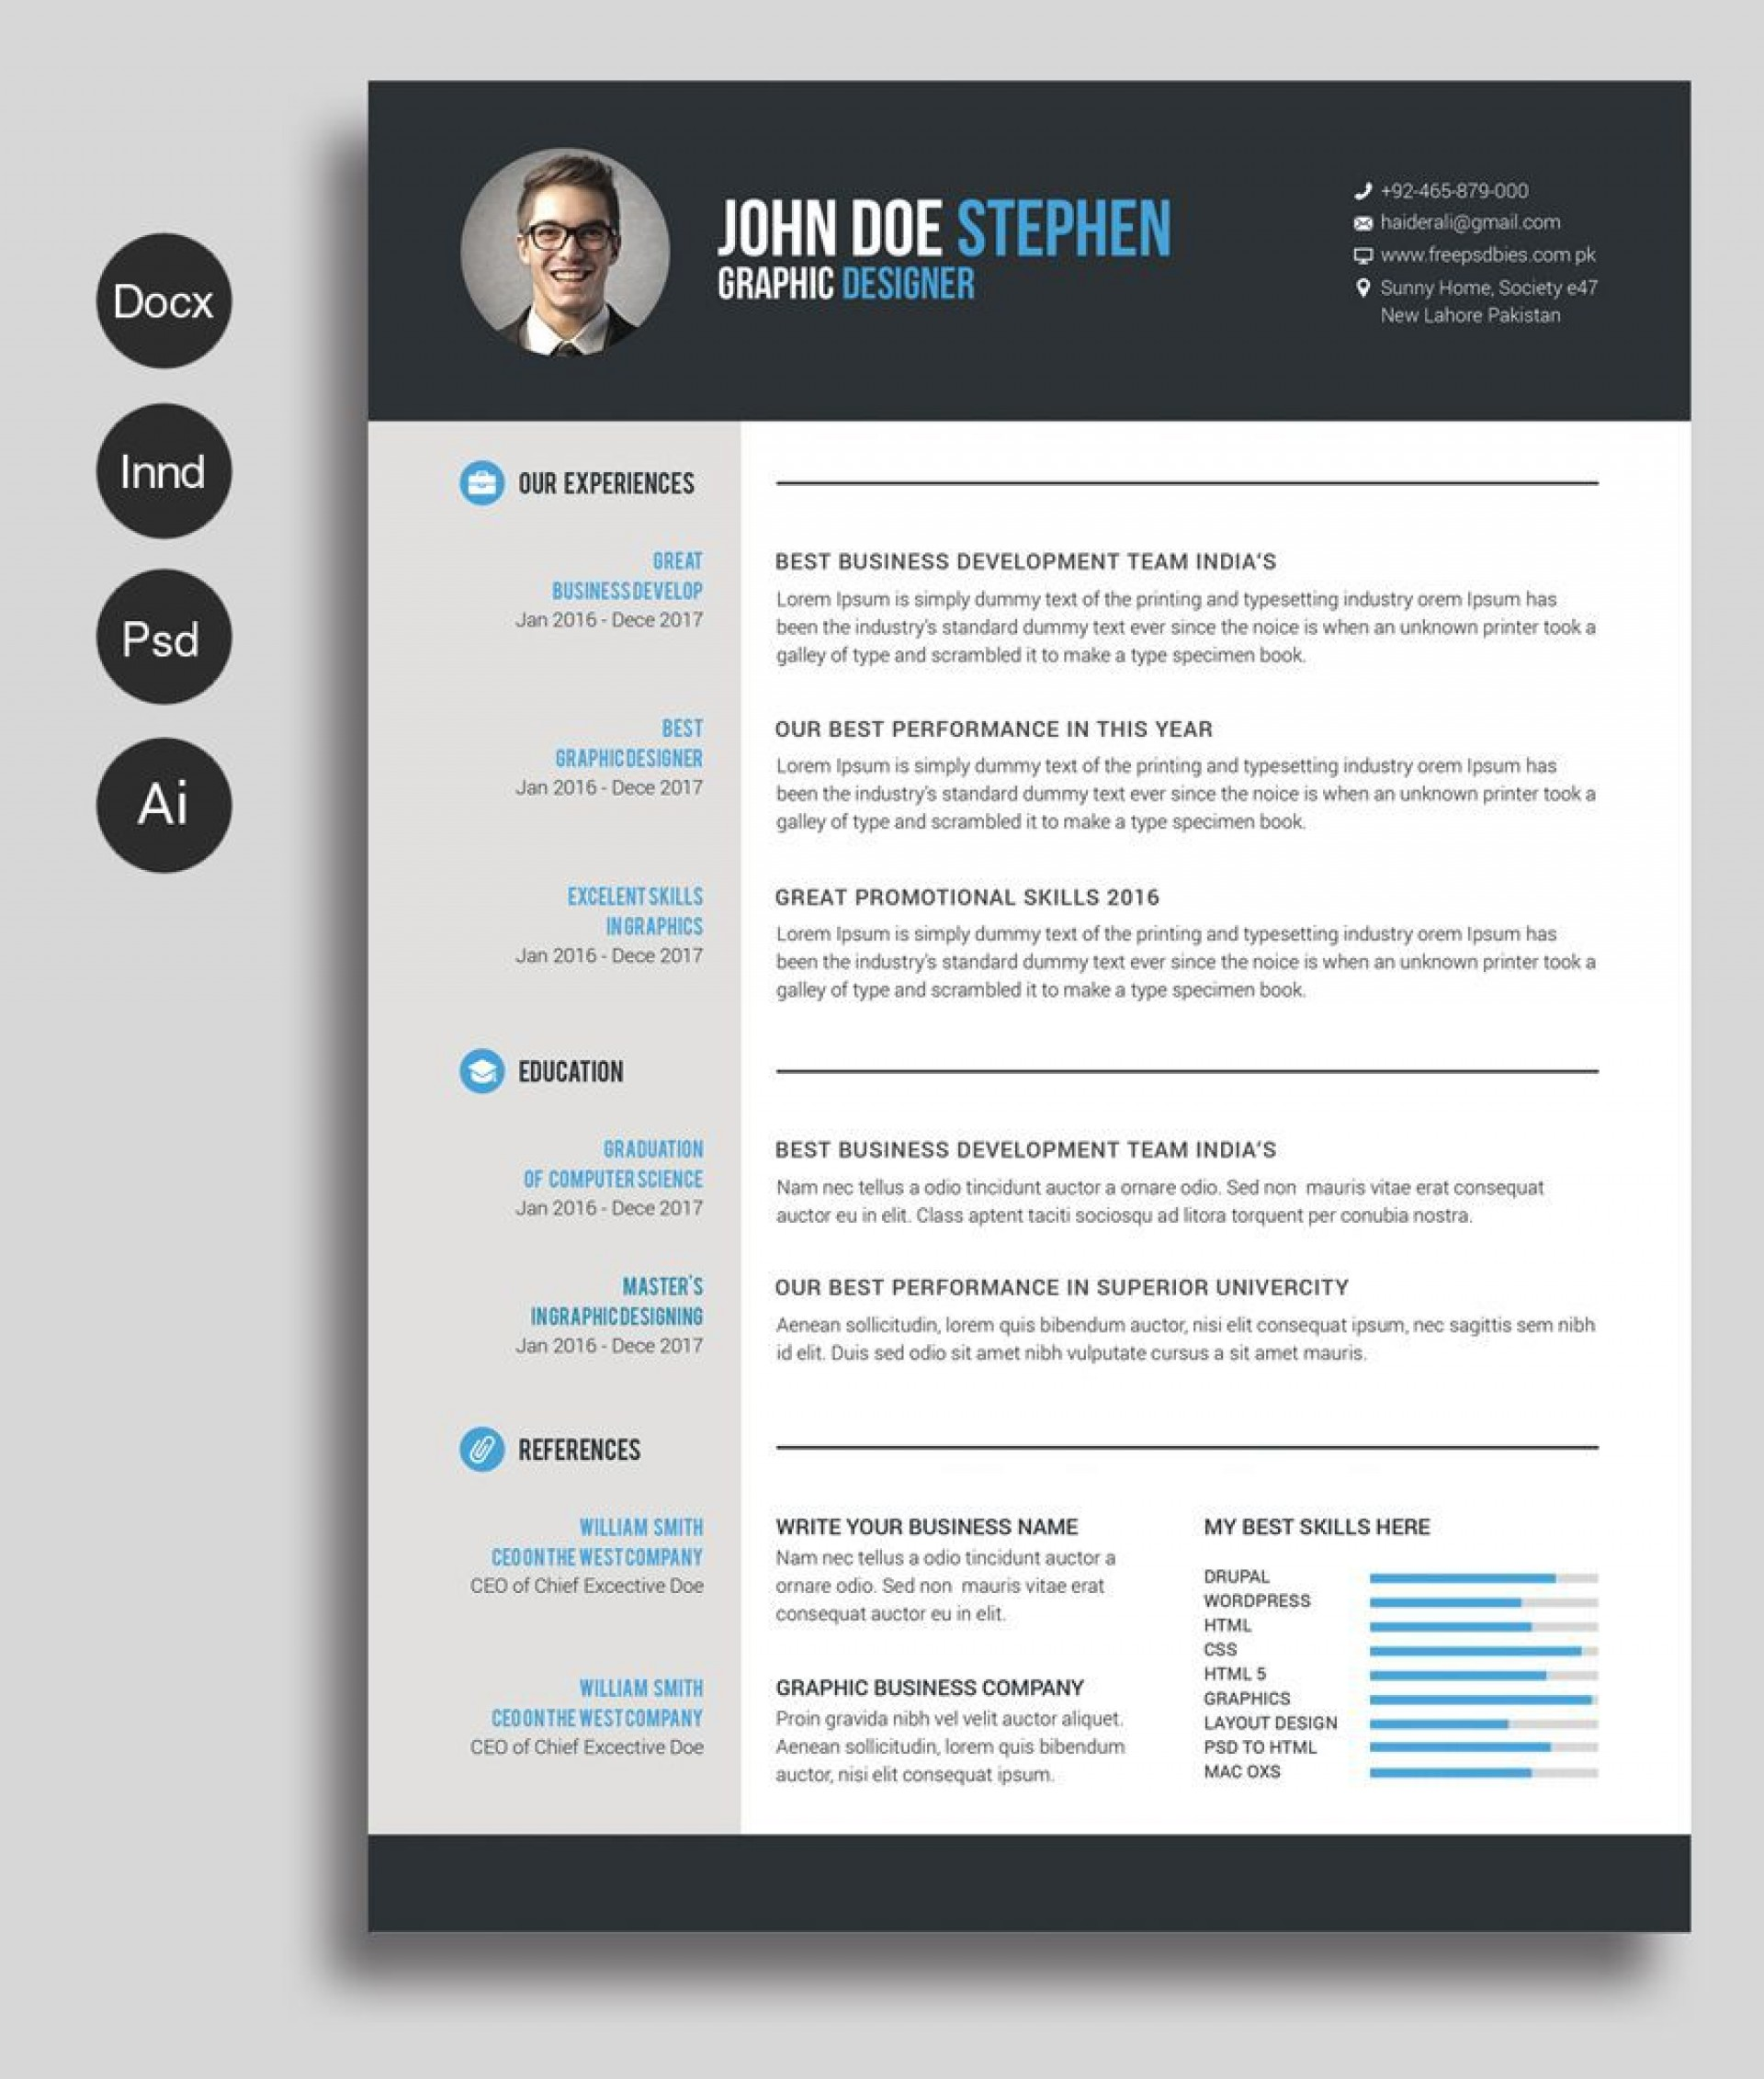 001 Excellent Curriculum Vitae Word Template Inspiration  Templates Download M 2019 Cv Free1920